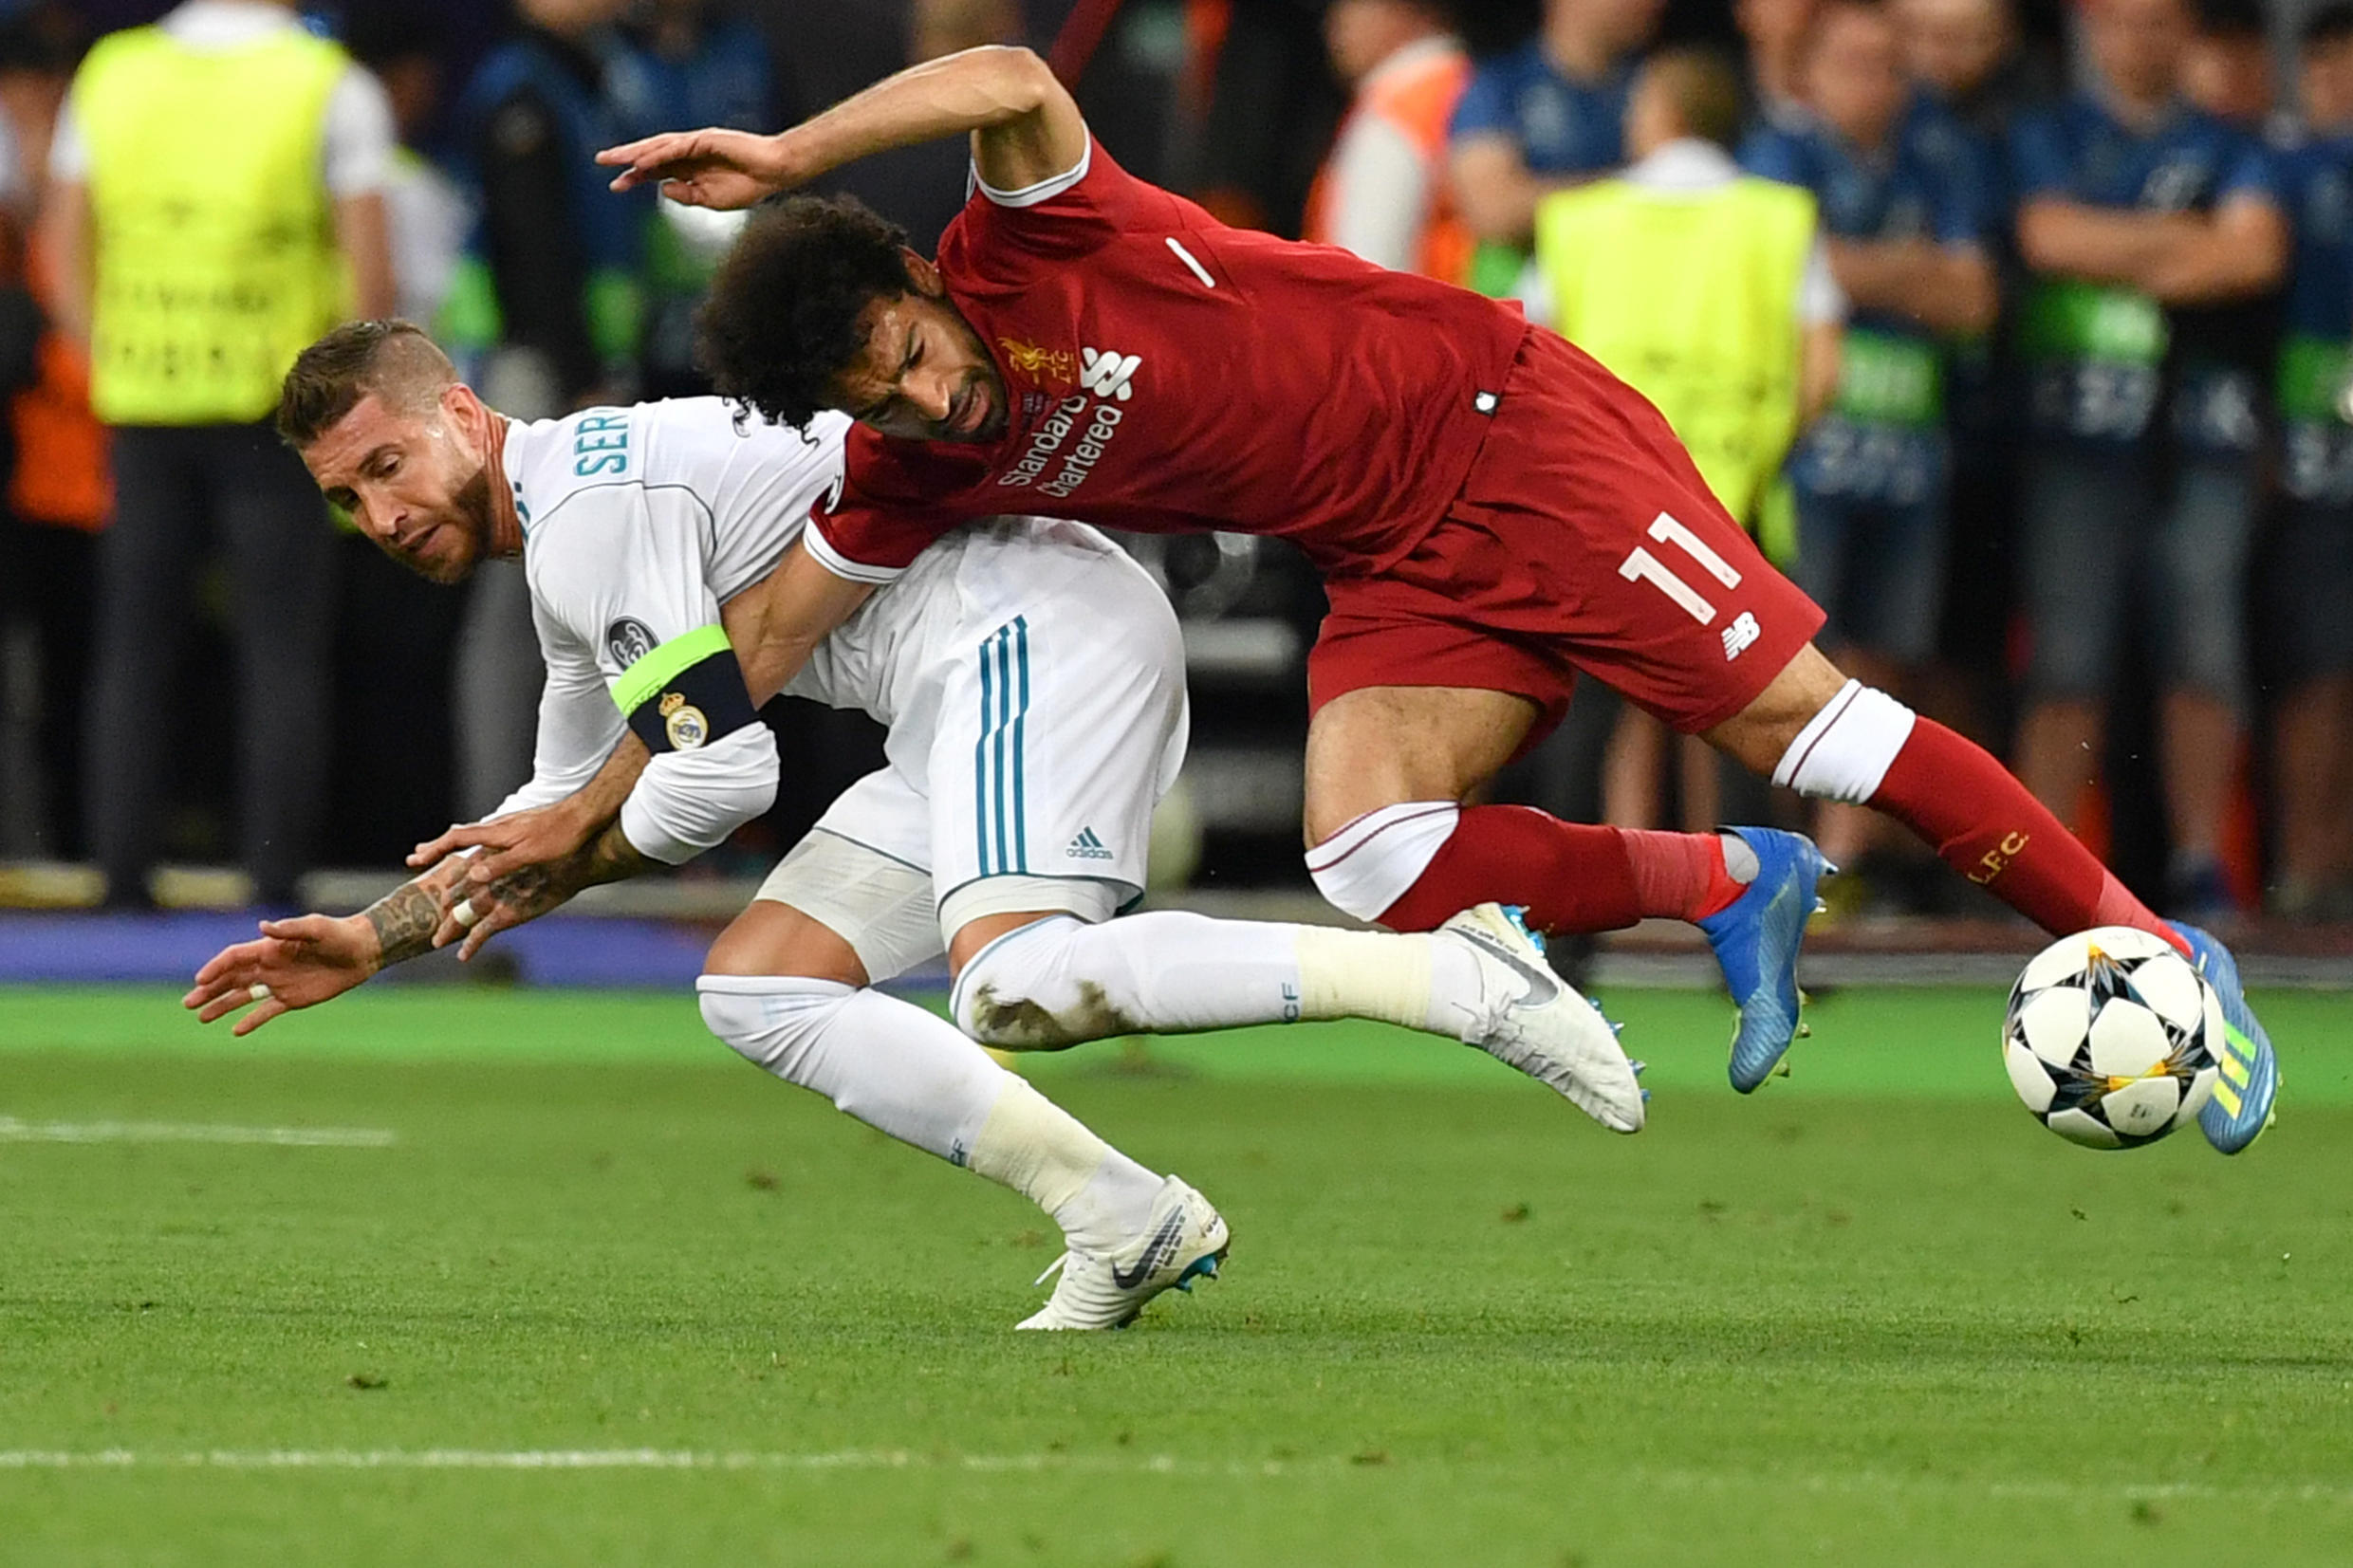 Mo Salah (right) is pulled to the ground by Sergio Ramos leading to a dislocated shoulder during the 2018 Champions League final in Kiev